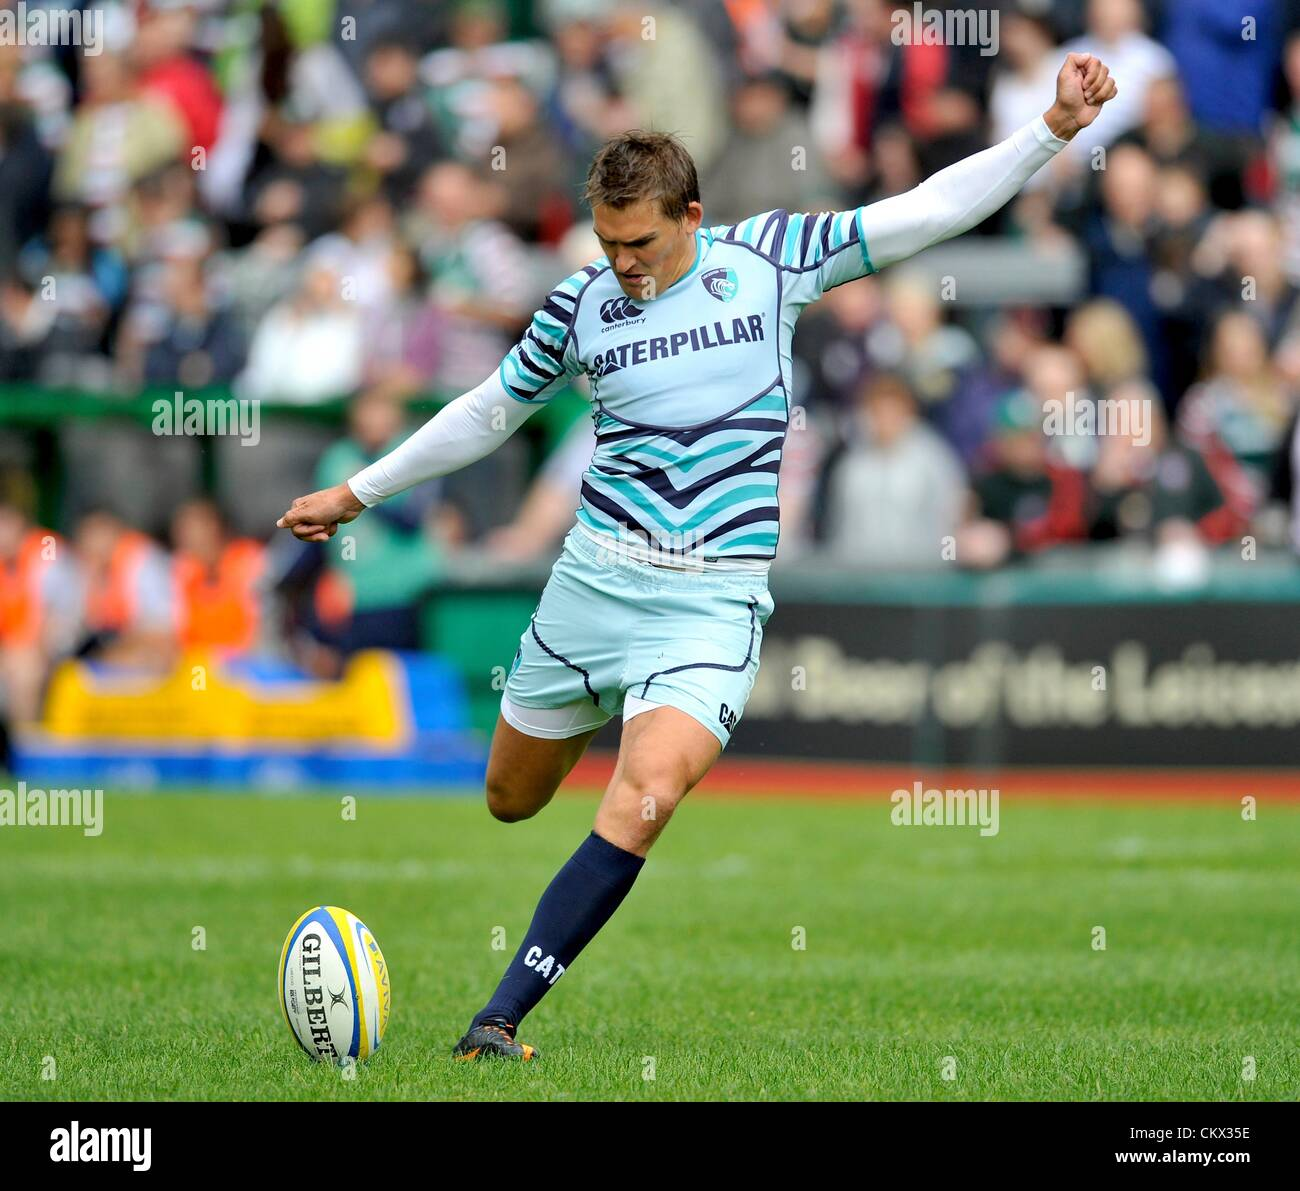 Leicester, UK. Saturday 25th August 2012. Toby Flood of Leicester Tigers kicks a conversion during the pre season Stock Photo